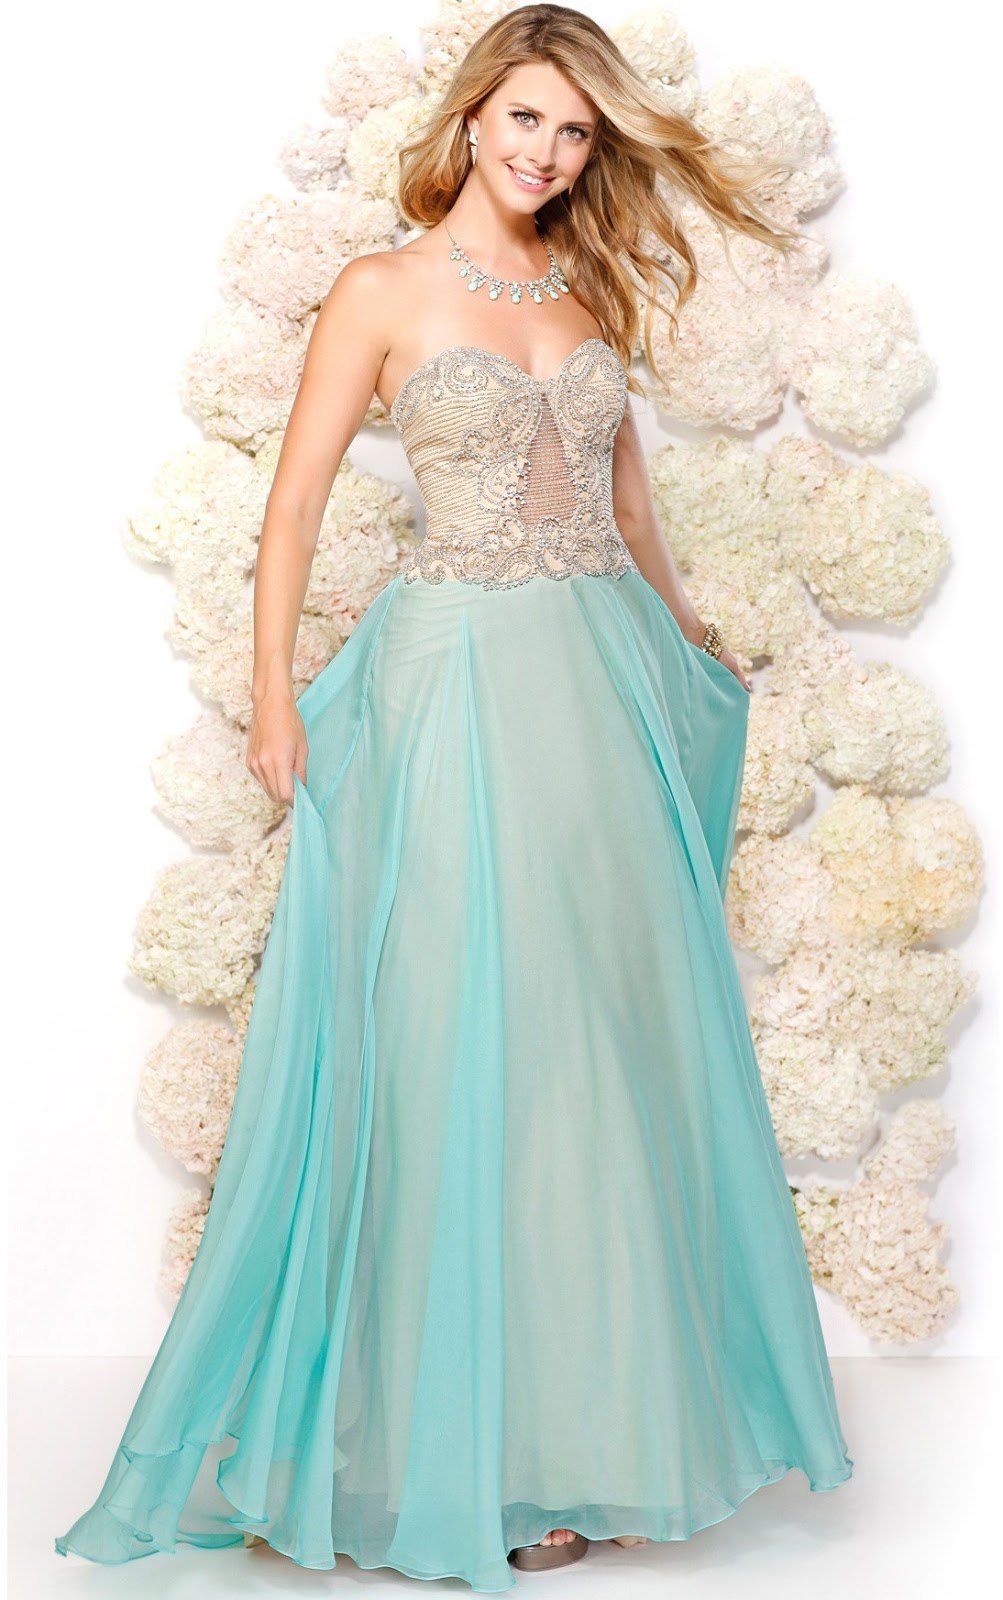 Prom Dress 2016 Collection Sherry London Luch Luch Craft